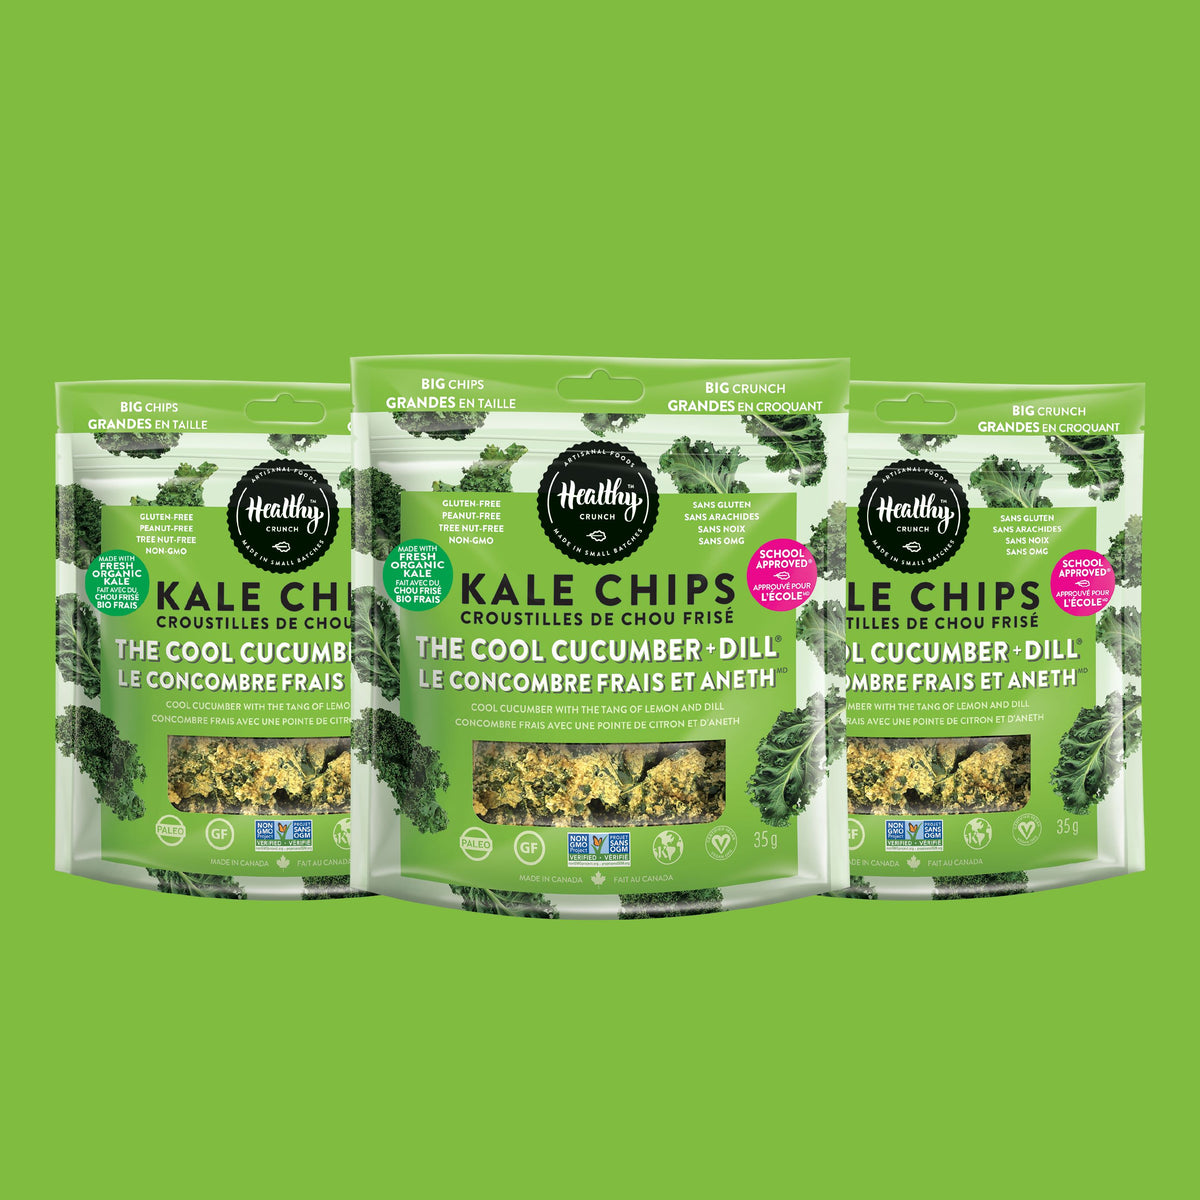 The Cool Cucumber + Dill Kale Chips